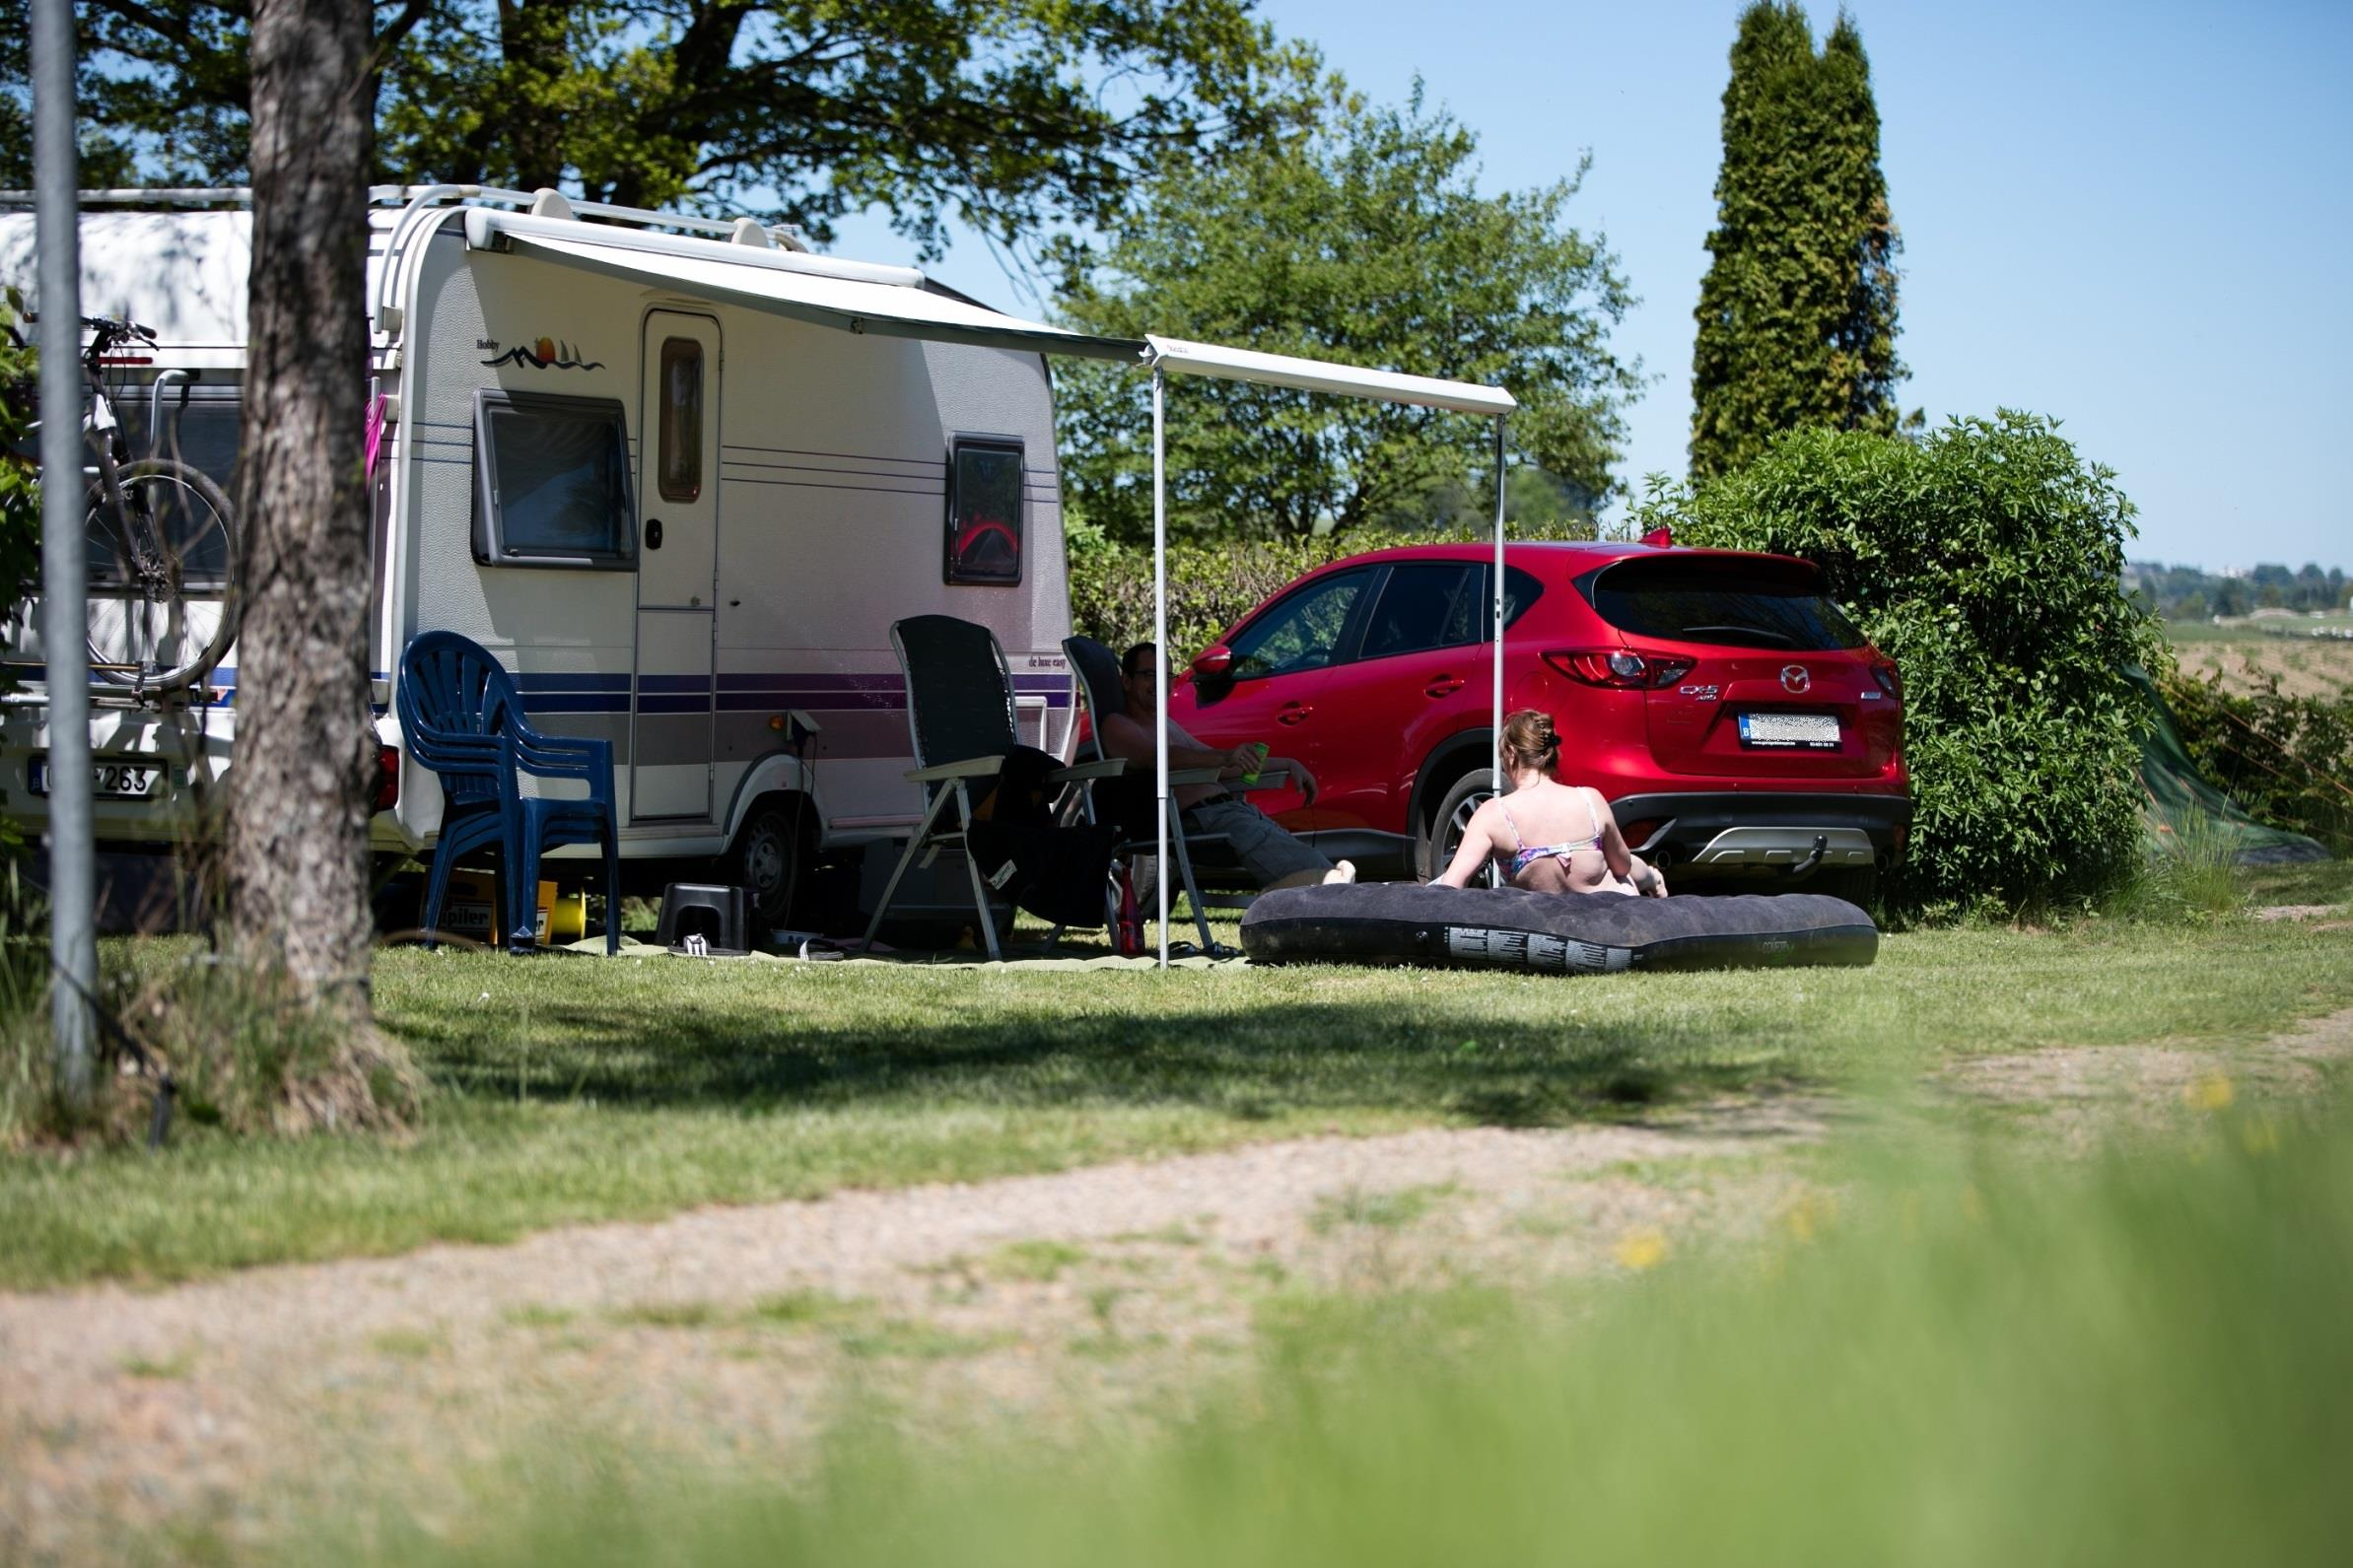 Camping plot 100 m² incl. 2 pers. and car